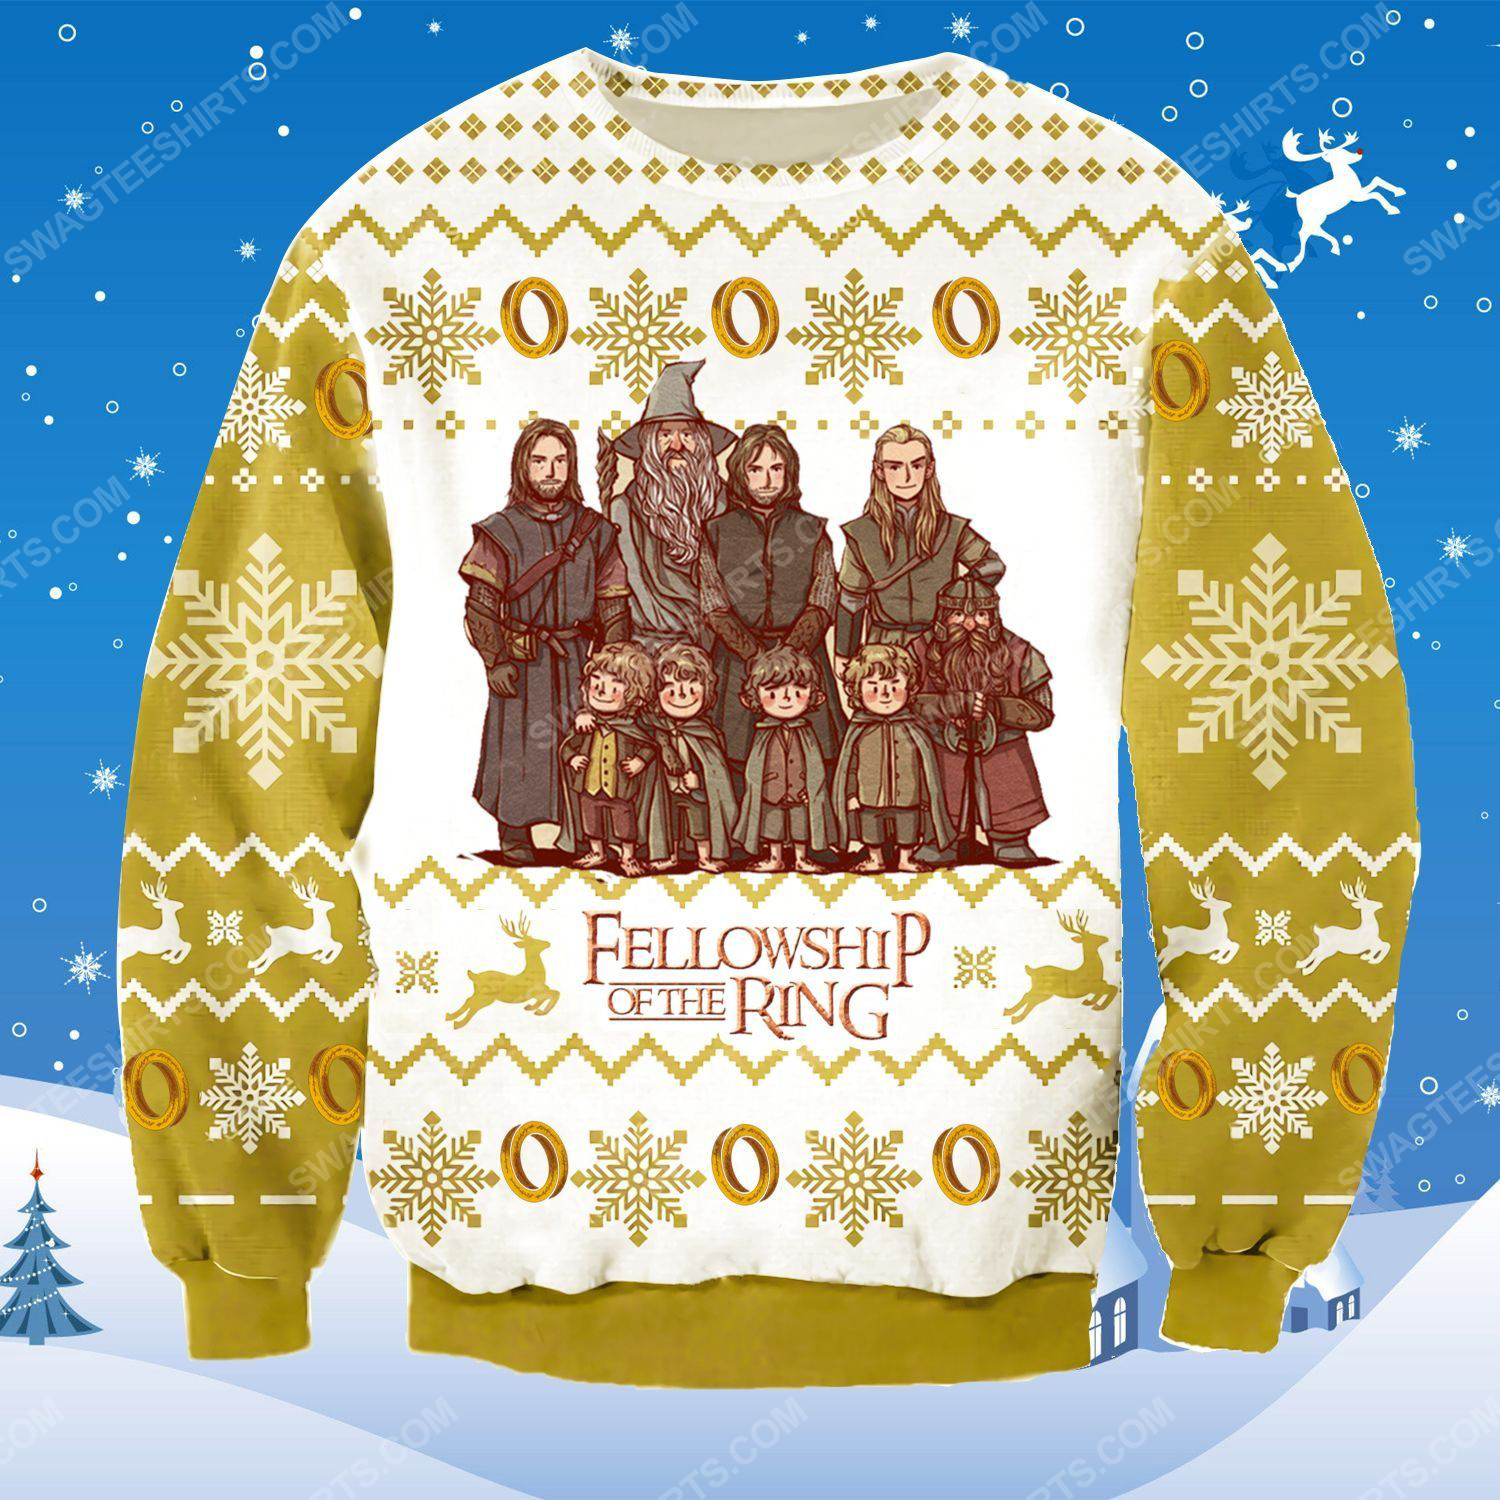 The fellowship of the ring ugly christmas sweater